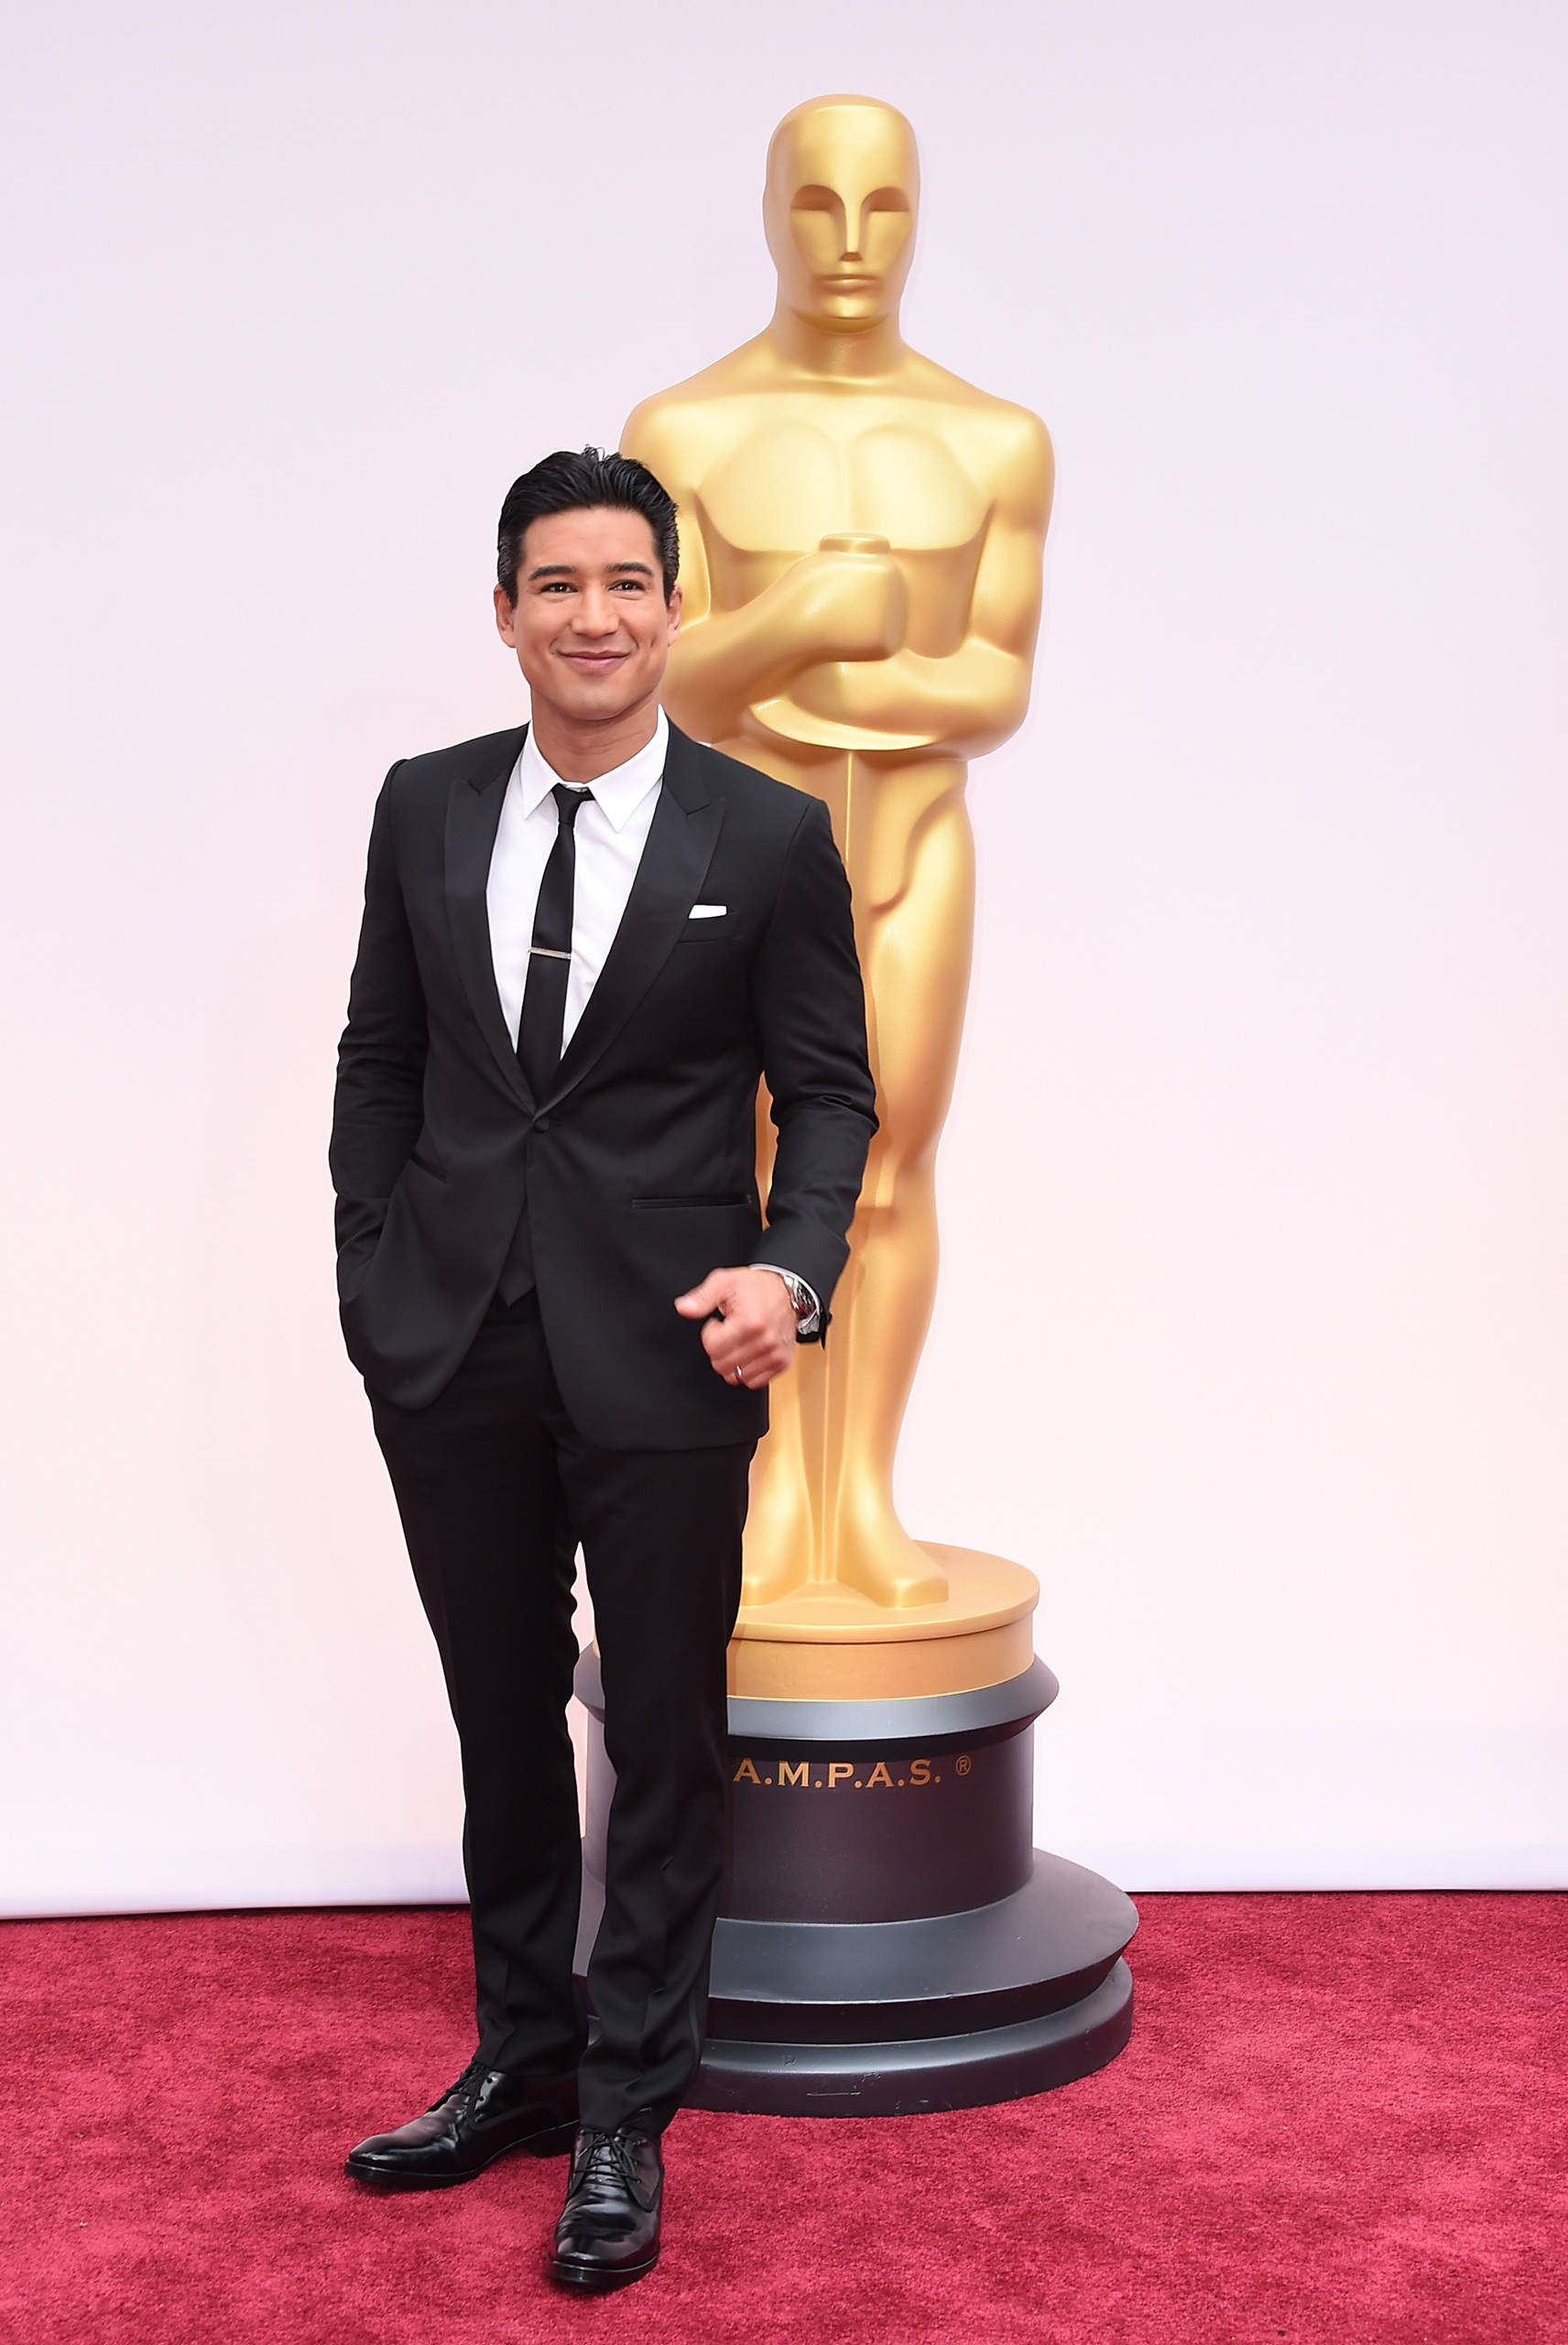 Mario Lopez attends the 87th Annual Academy Awards on Feb. 22, 2015 in Hollywood, Calif.